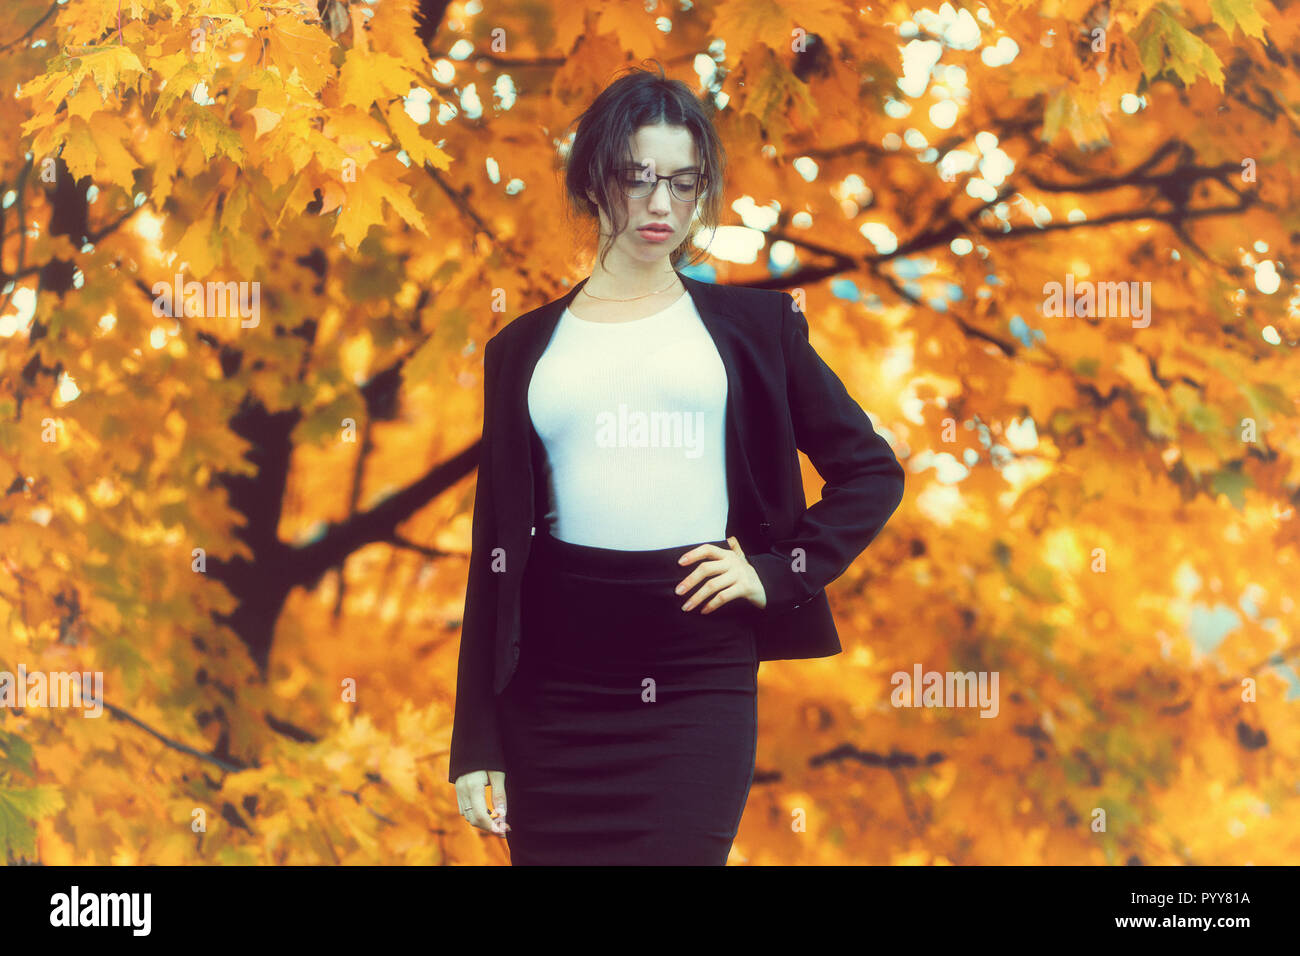 Business woman in formal wear stands over yellow autumn trees. - Stock Image